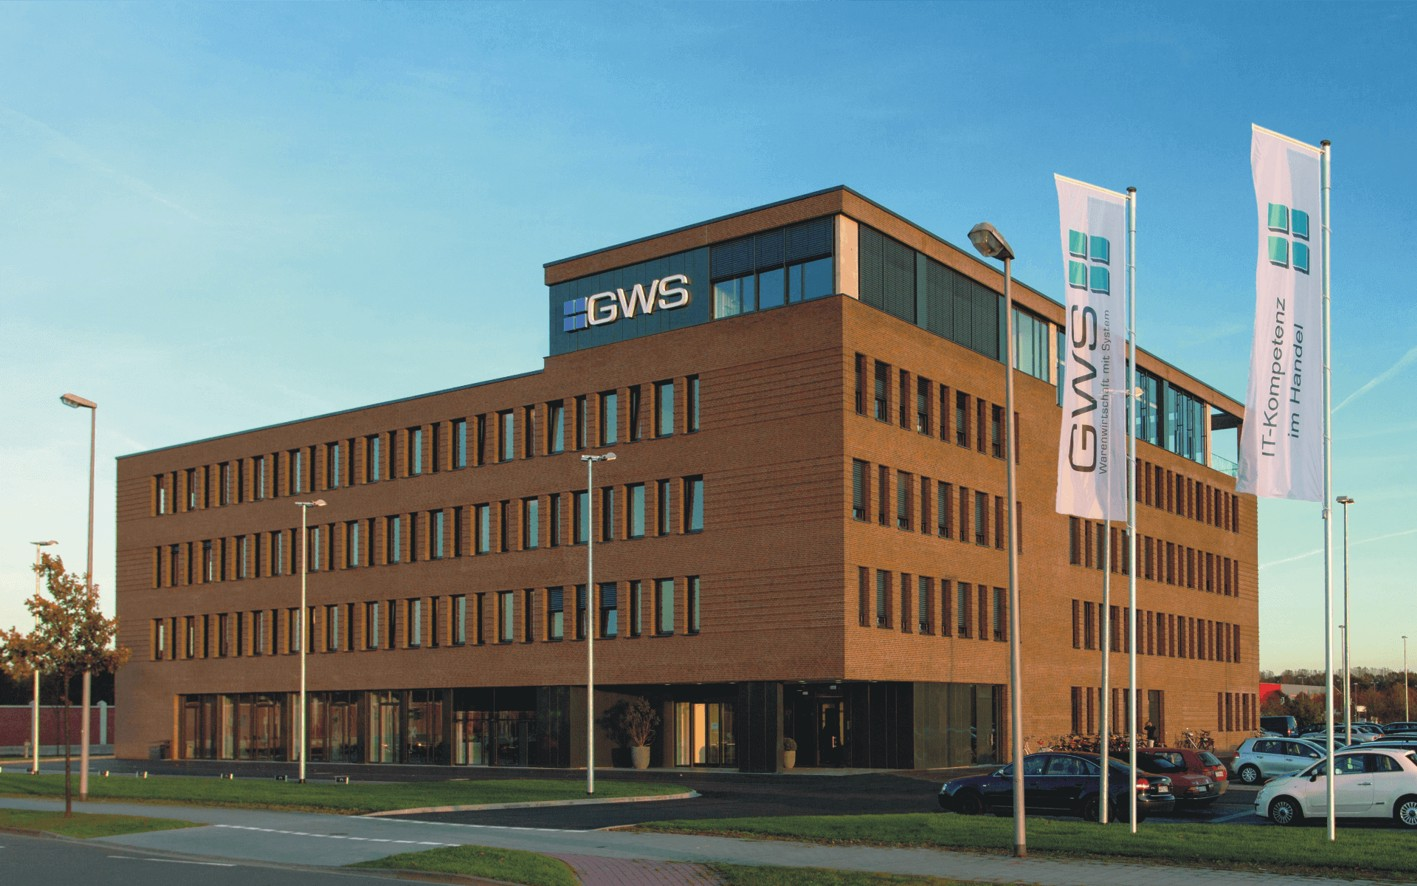 Unser IT-Partner GWS, Münster.